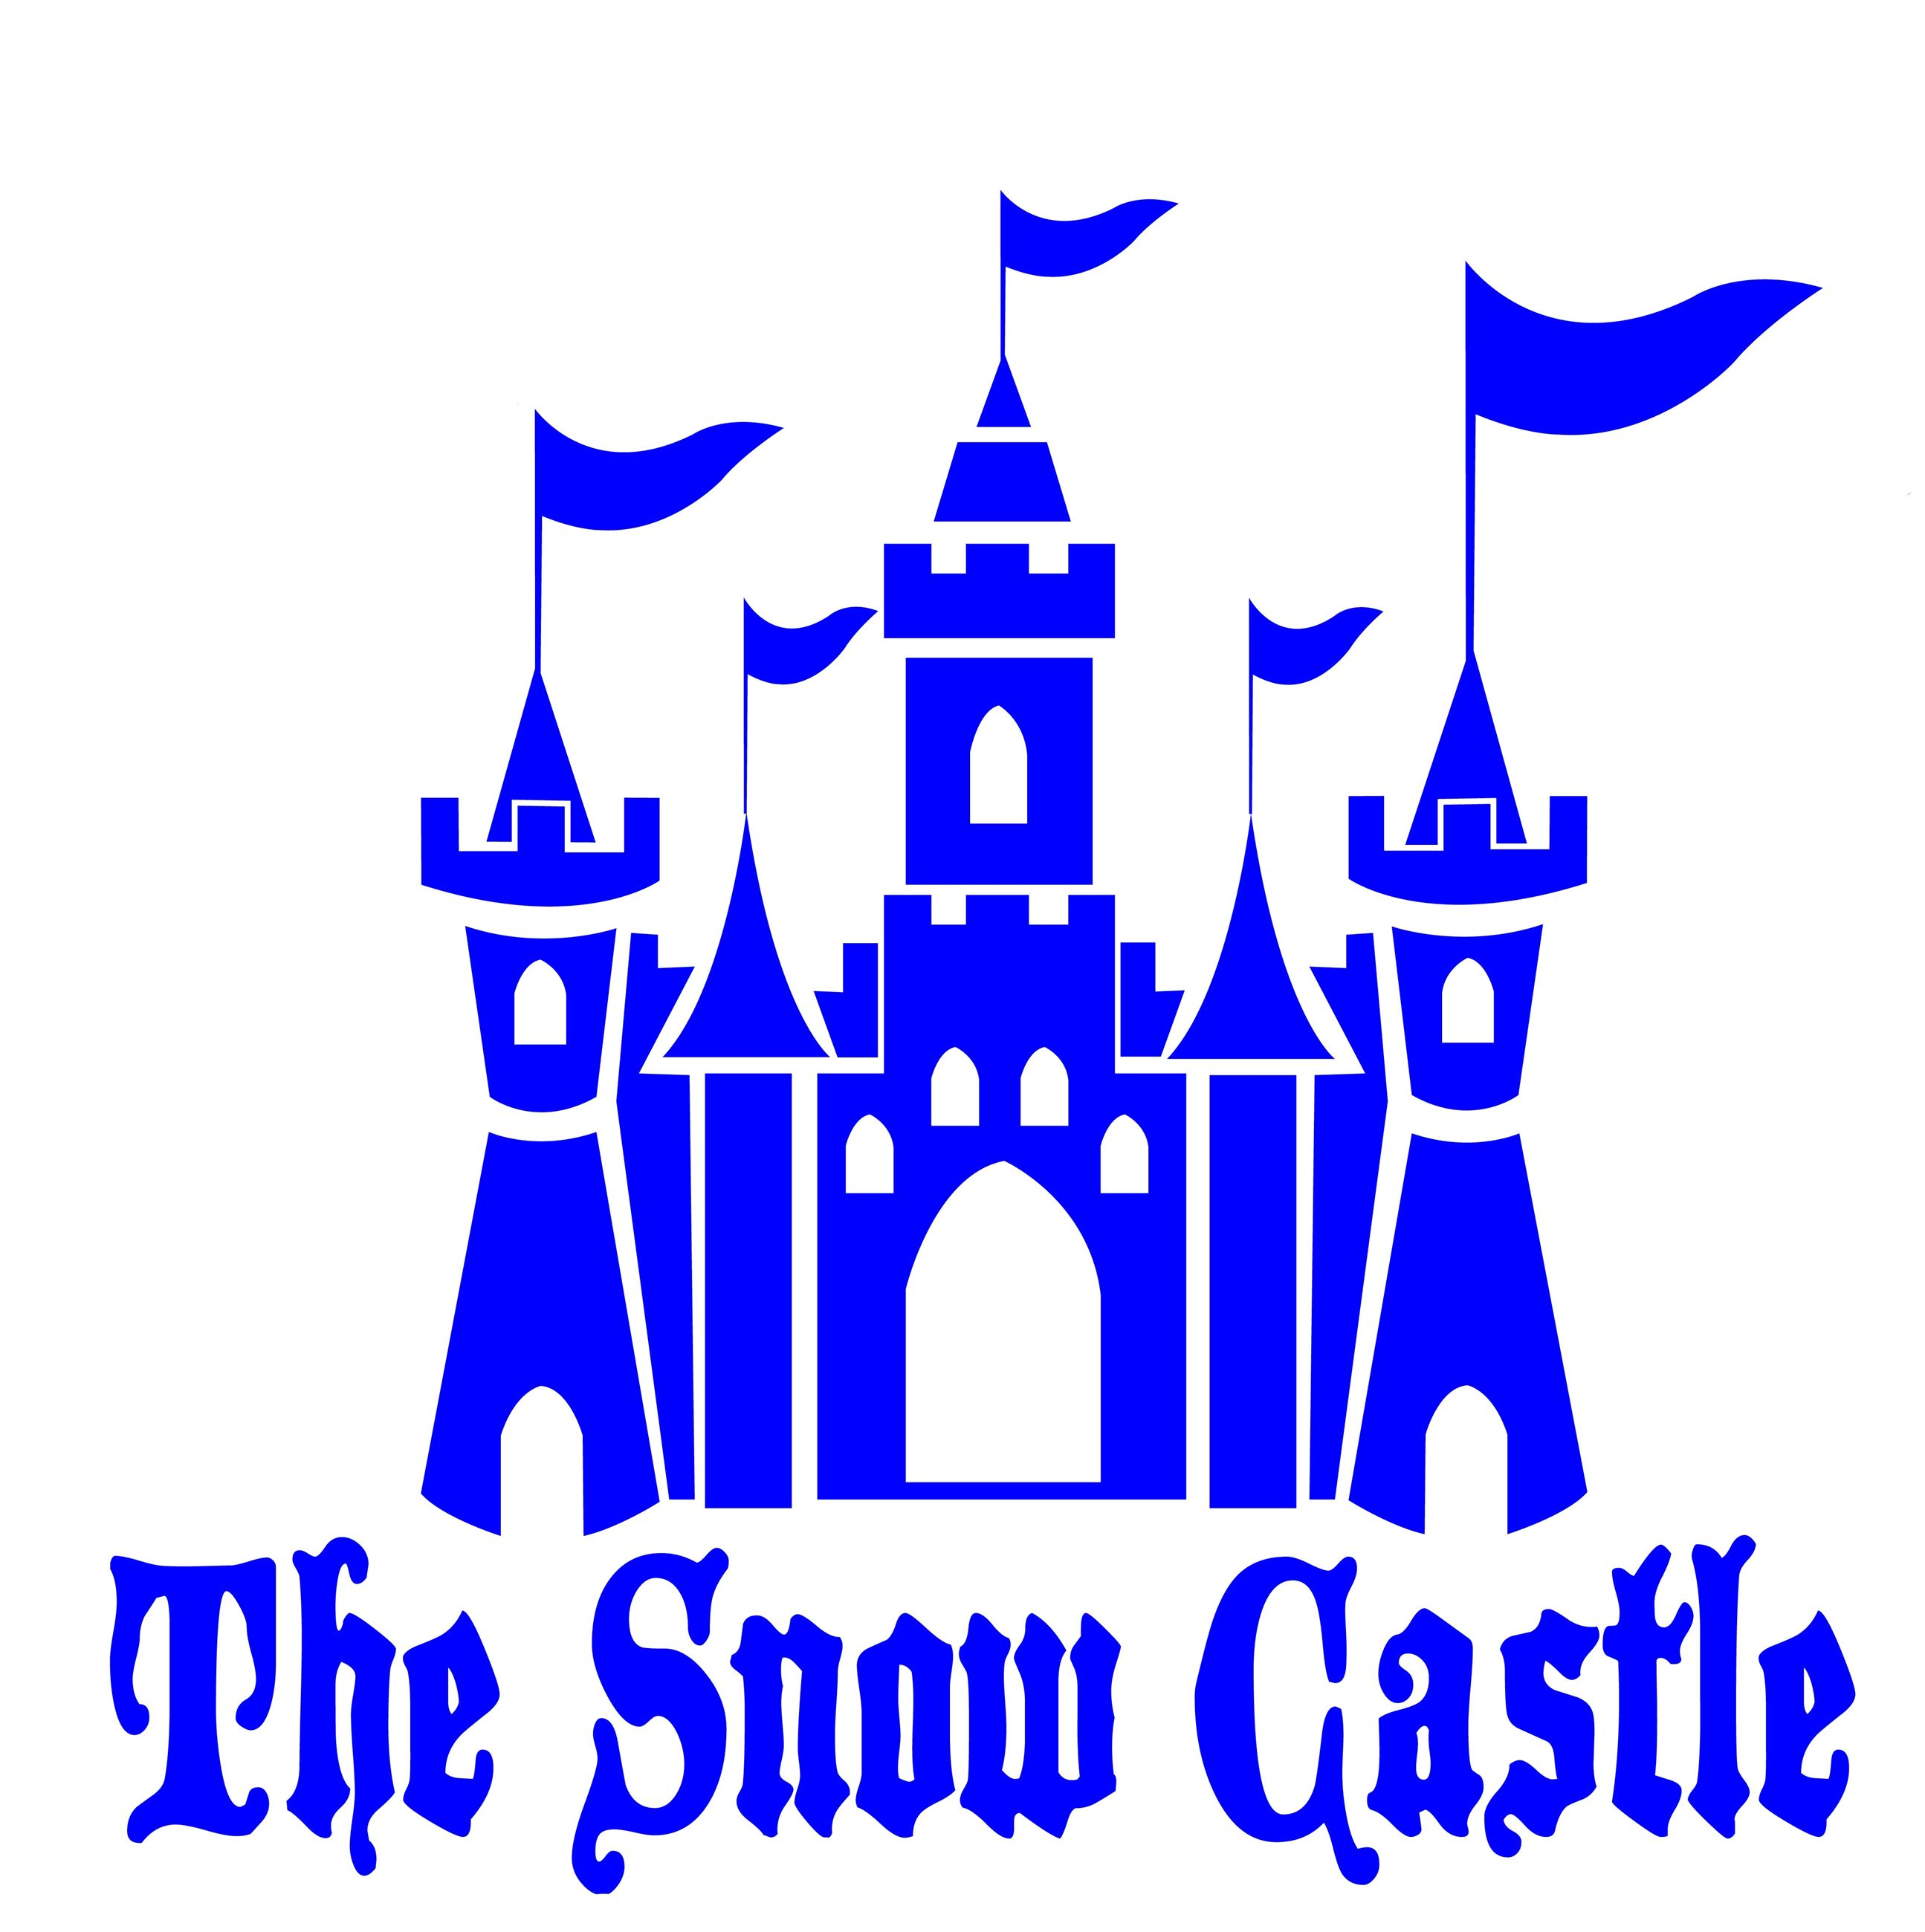 The Snow Castle Sign